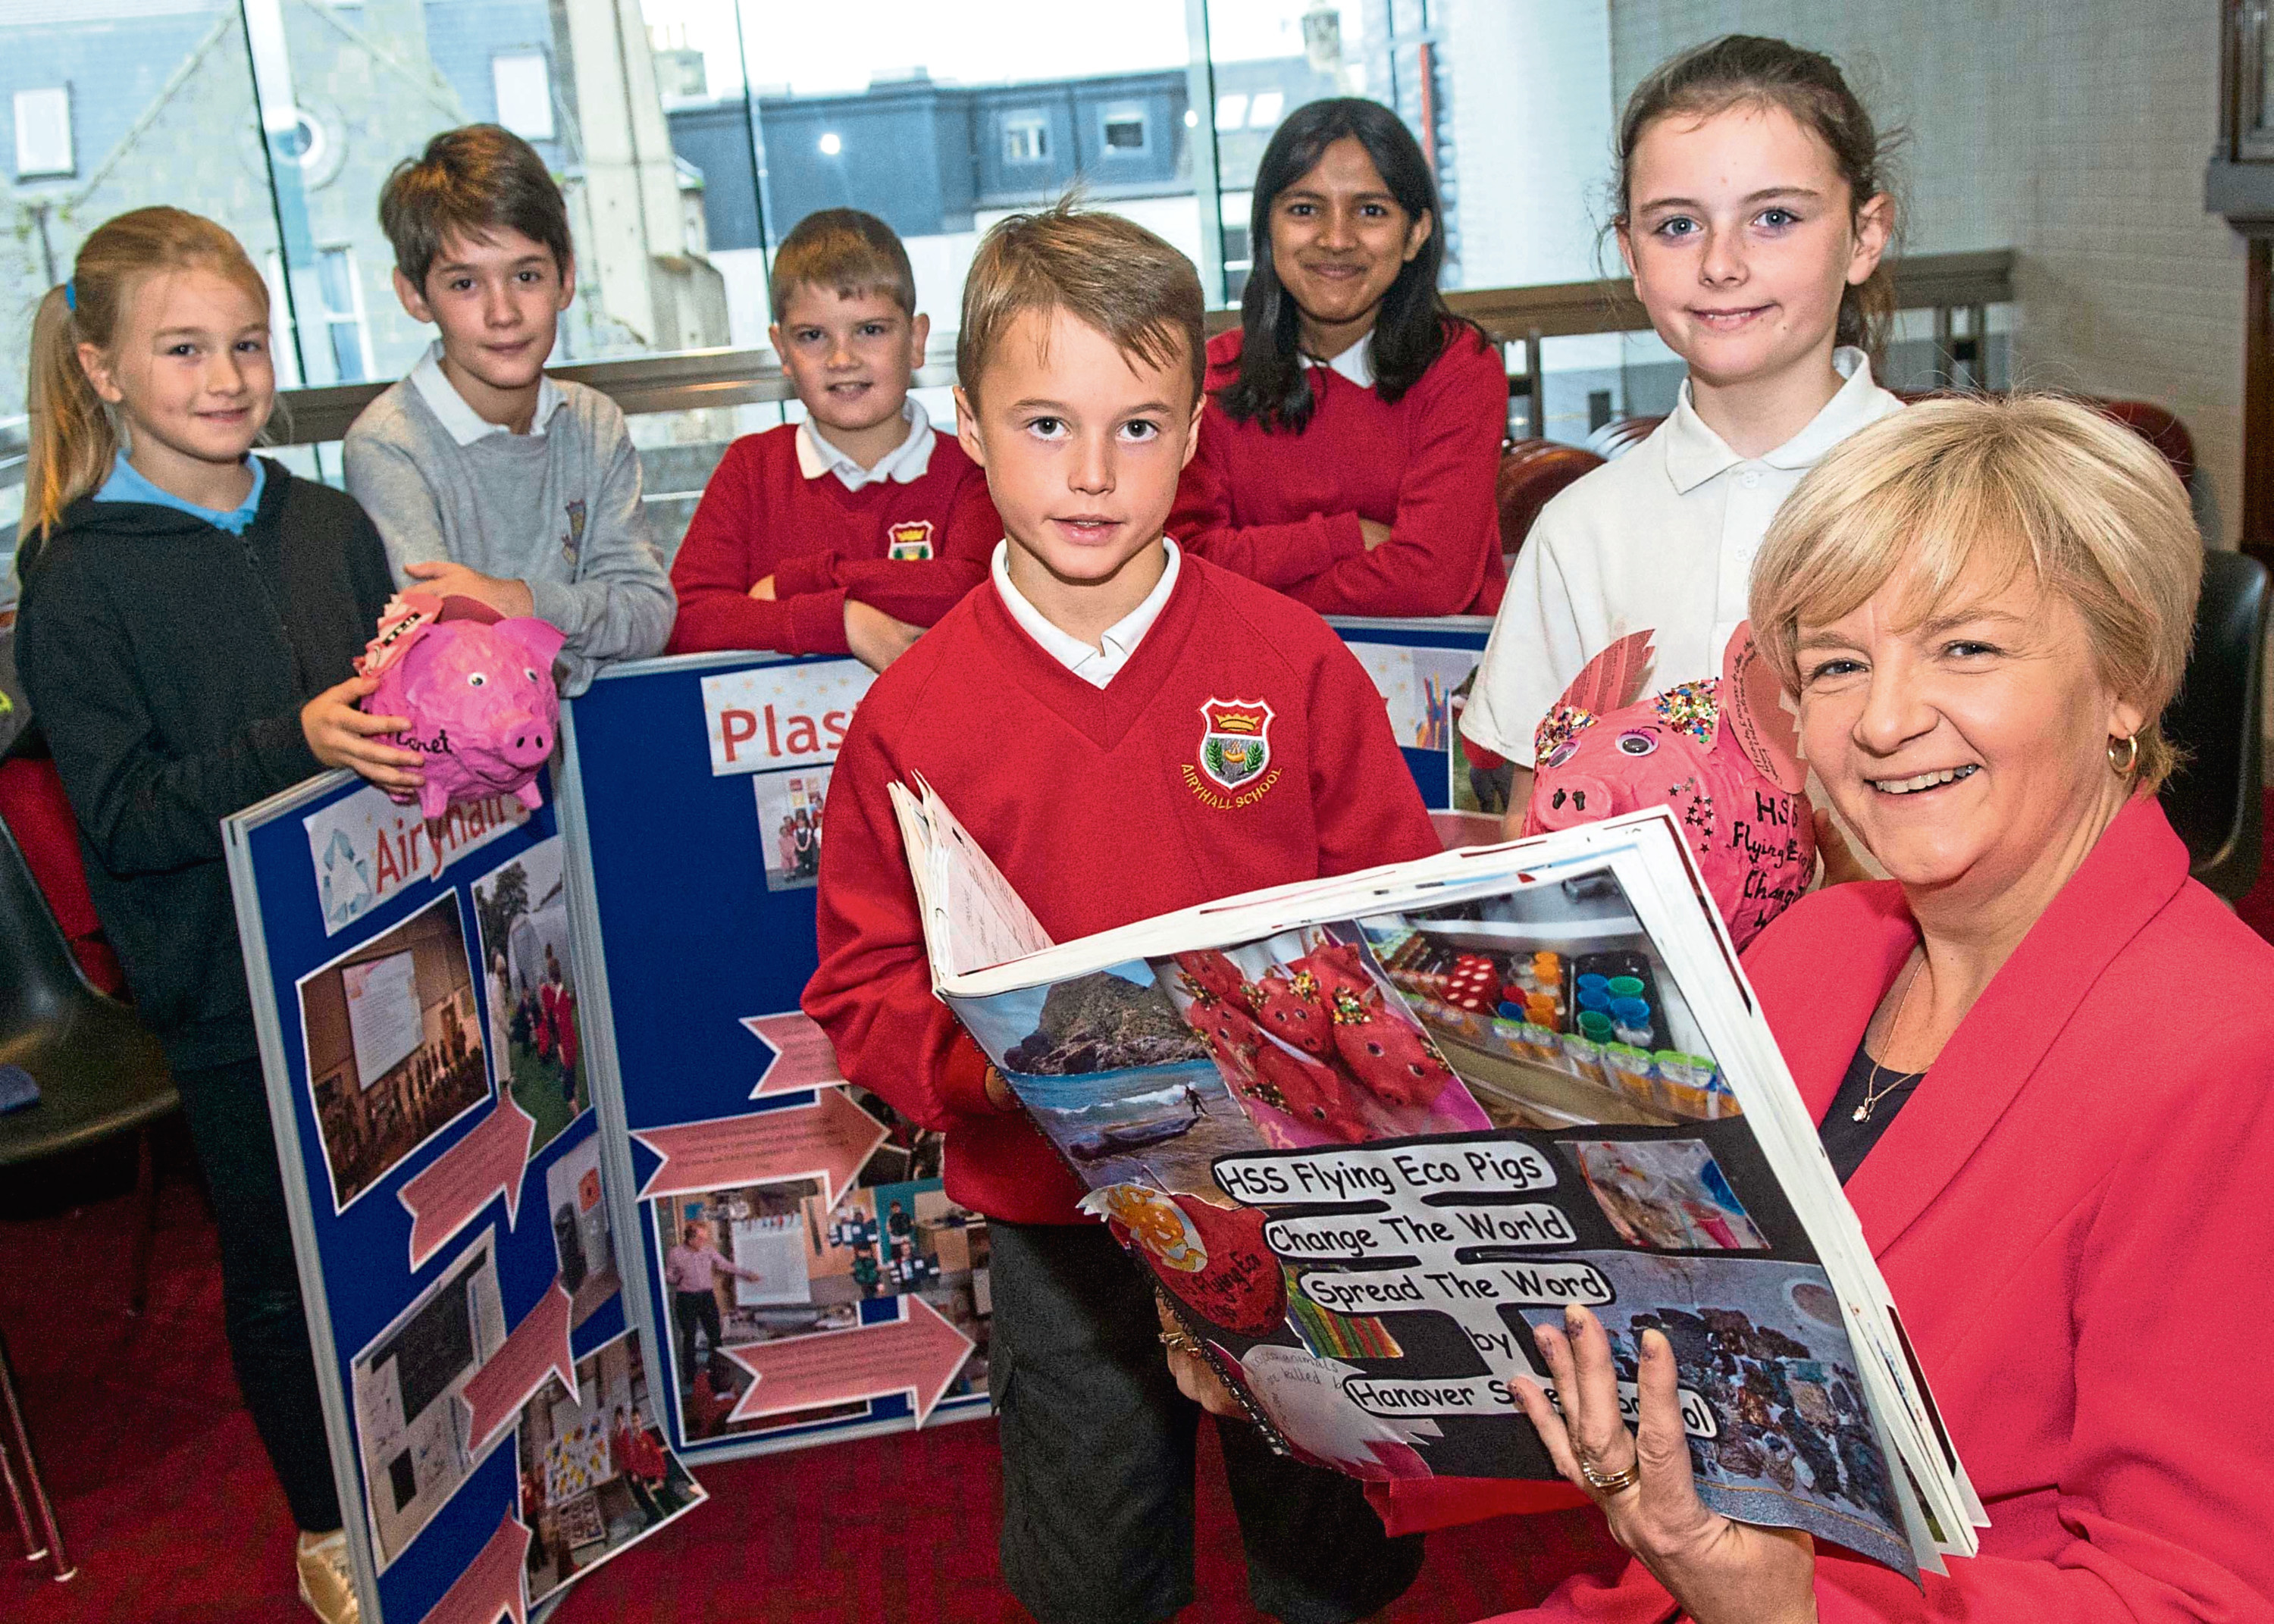 Airyhall Primary school and Hanover street school have been working on projects to show how using paper, recyclable straws is better than using plastic straws.